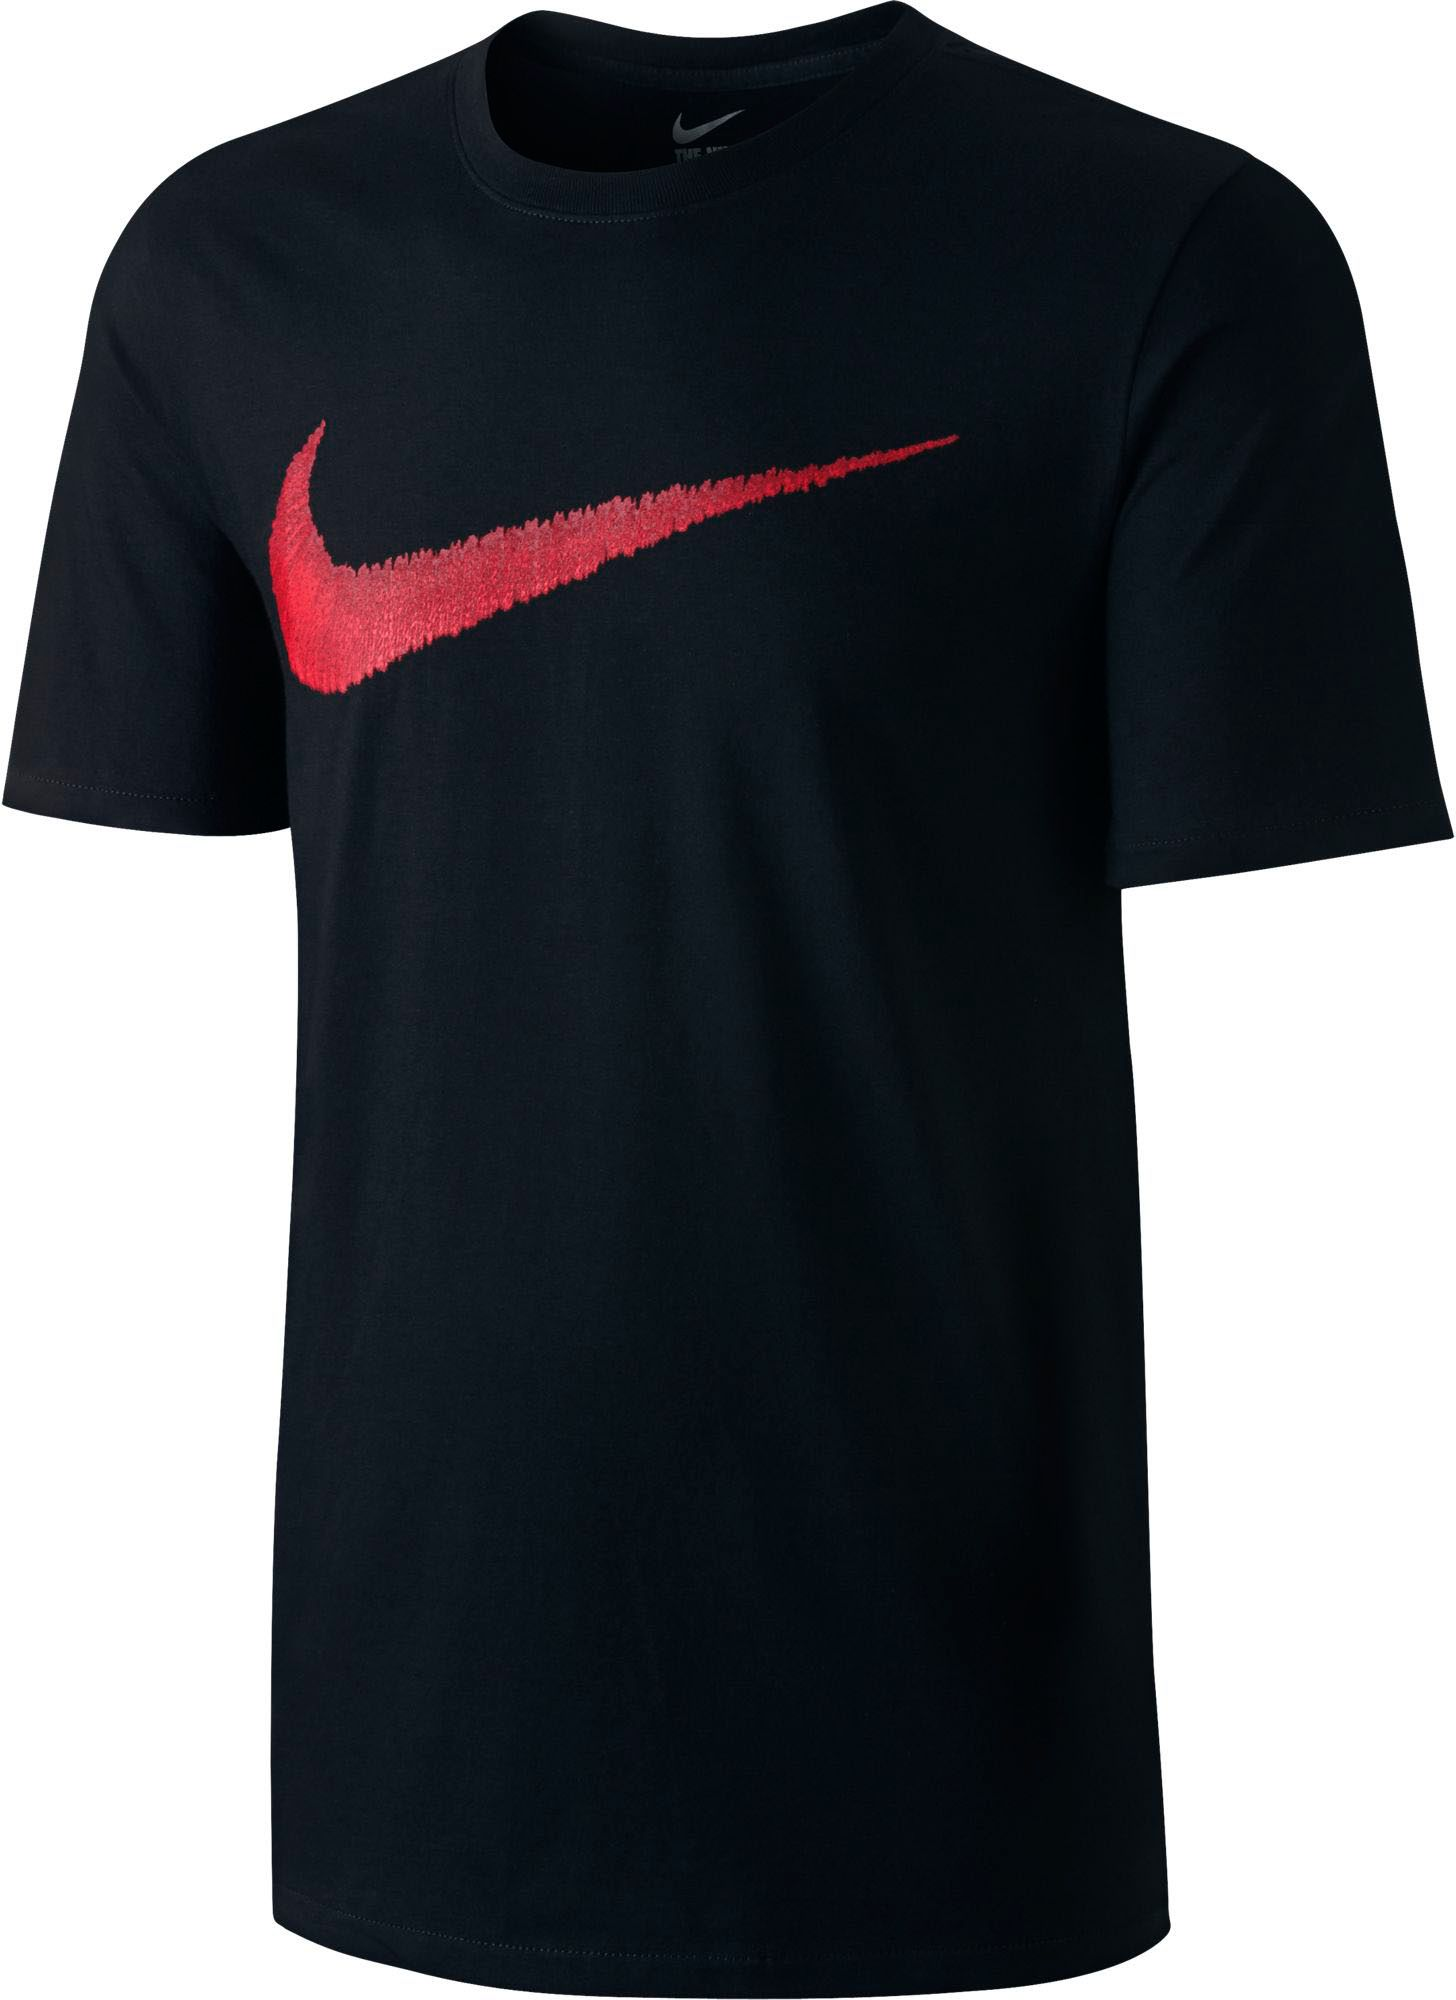 product image nike mens hangtag swoosh graphic t shirt - Basketball T Shirt Design Ideas